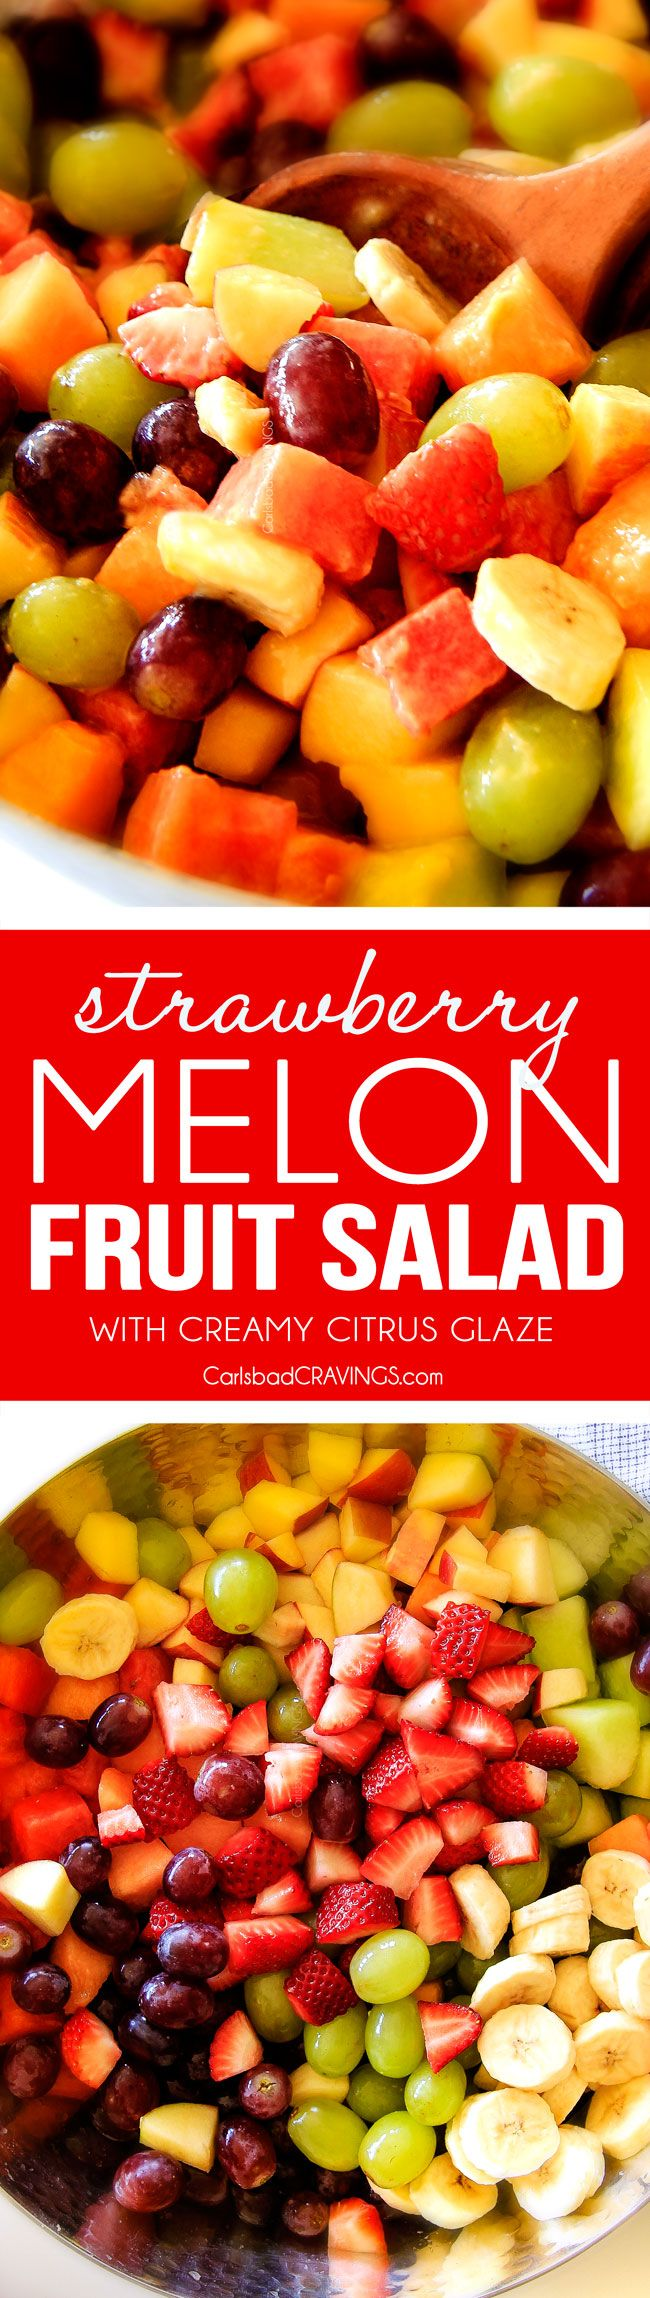 Strawberry Melon Fruit Salad with Creamy Citrus Glaze - I took this to a barbecue and it was gone in minutes! Its so cool and refreshing withe the BEST GLAZE and I love the combo of melons, strawberries, bananas, apples and grapes!